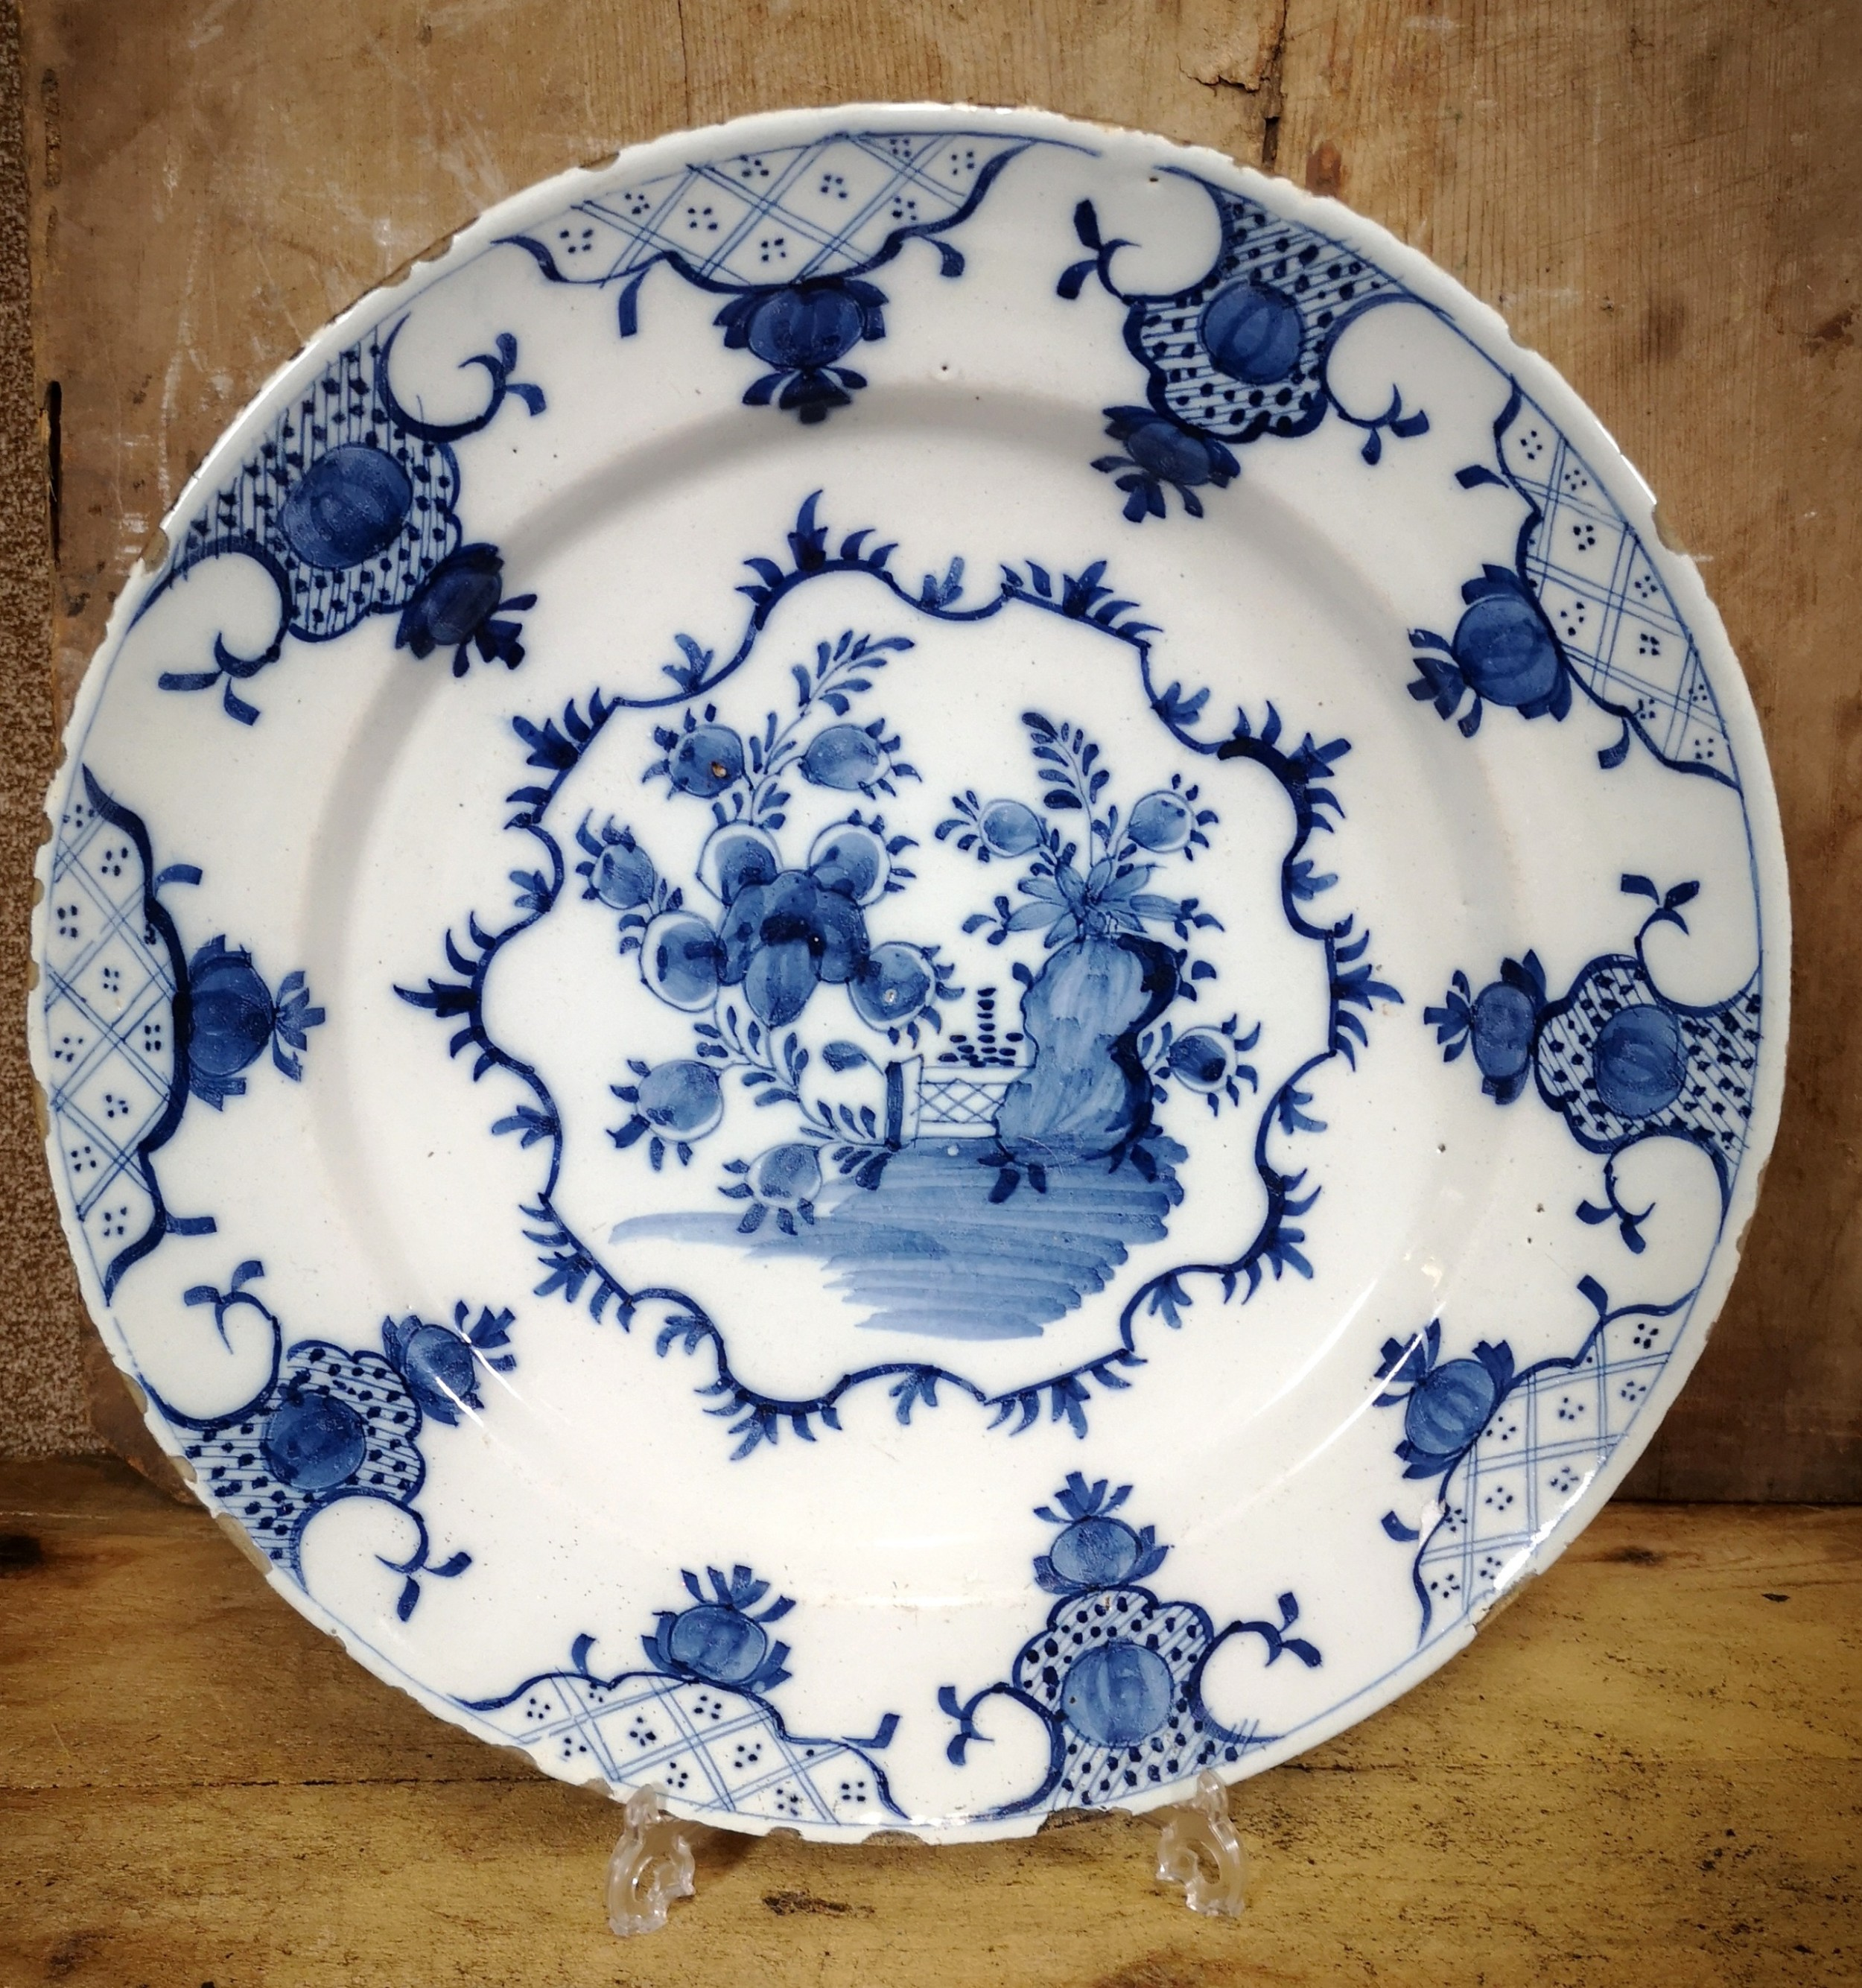 18th century english blue and white delft charger plate